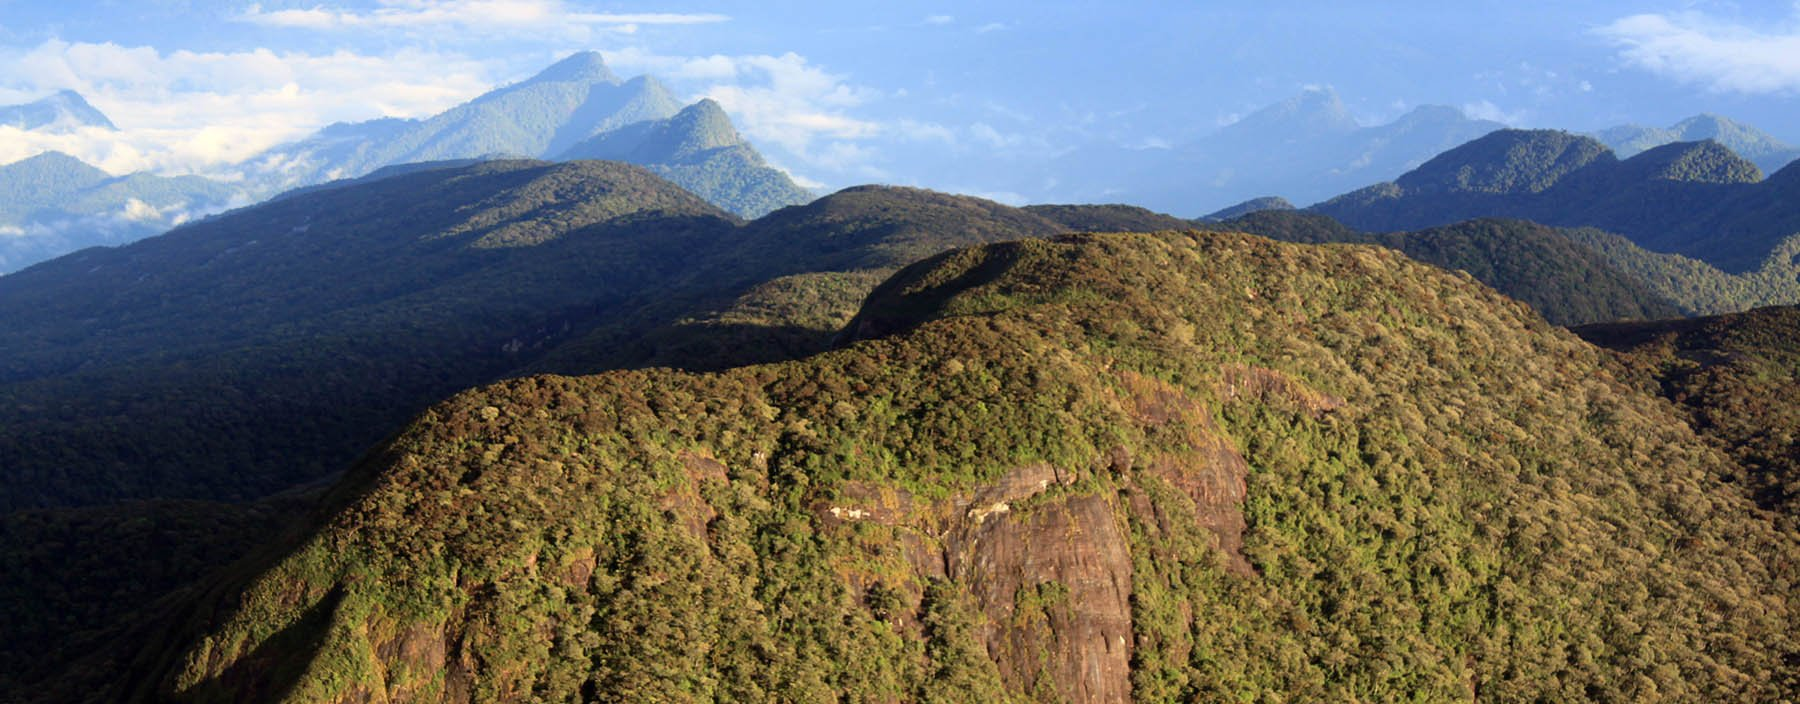 sri lanka, adam's peak, view from top.jpg